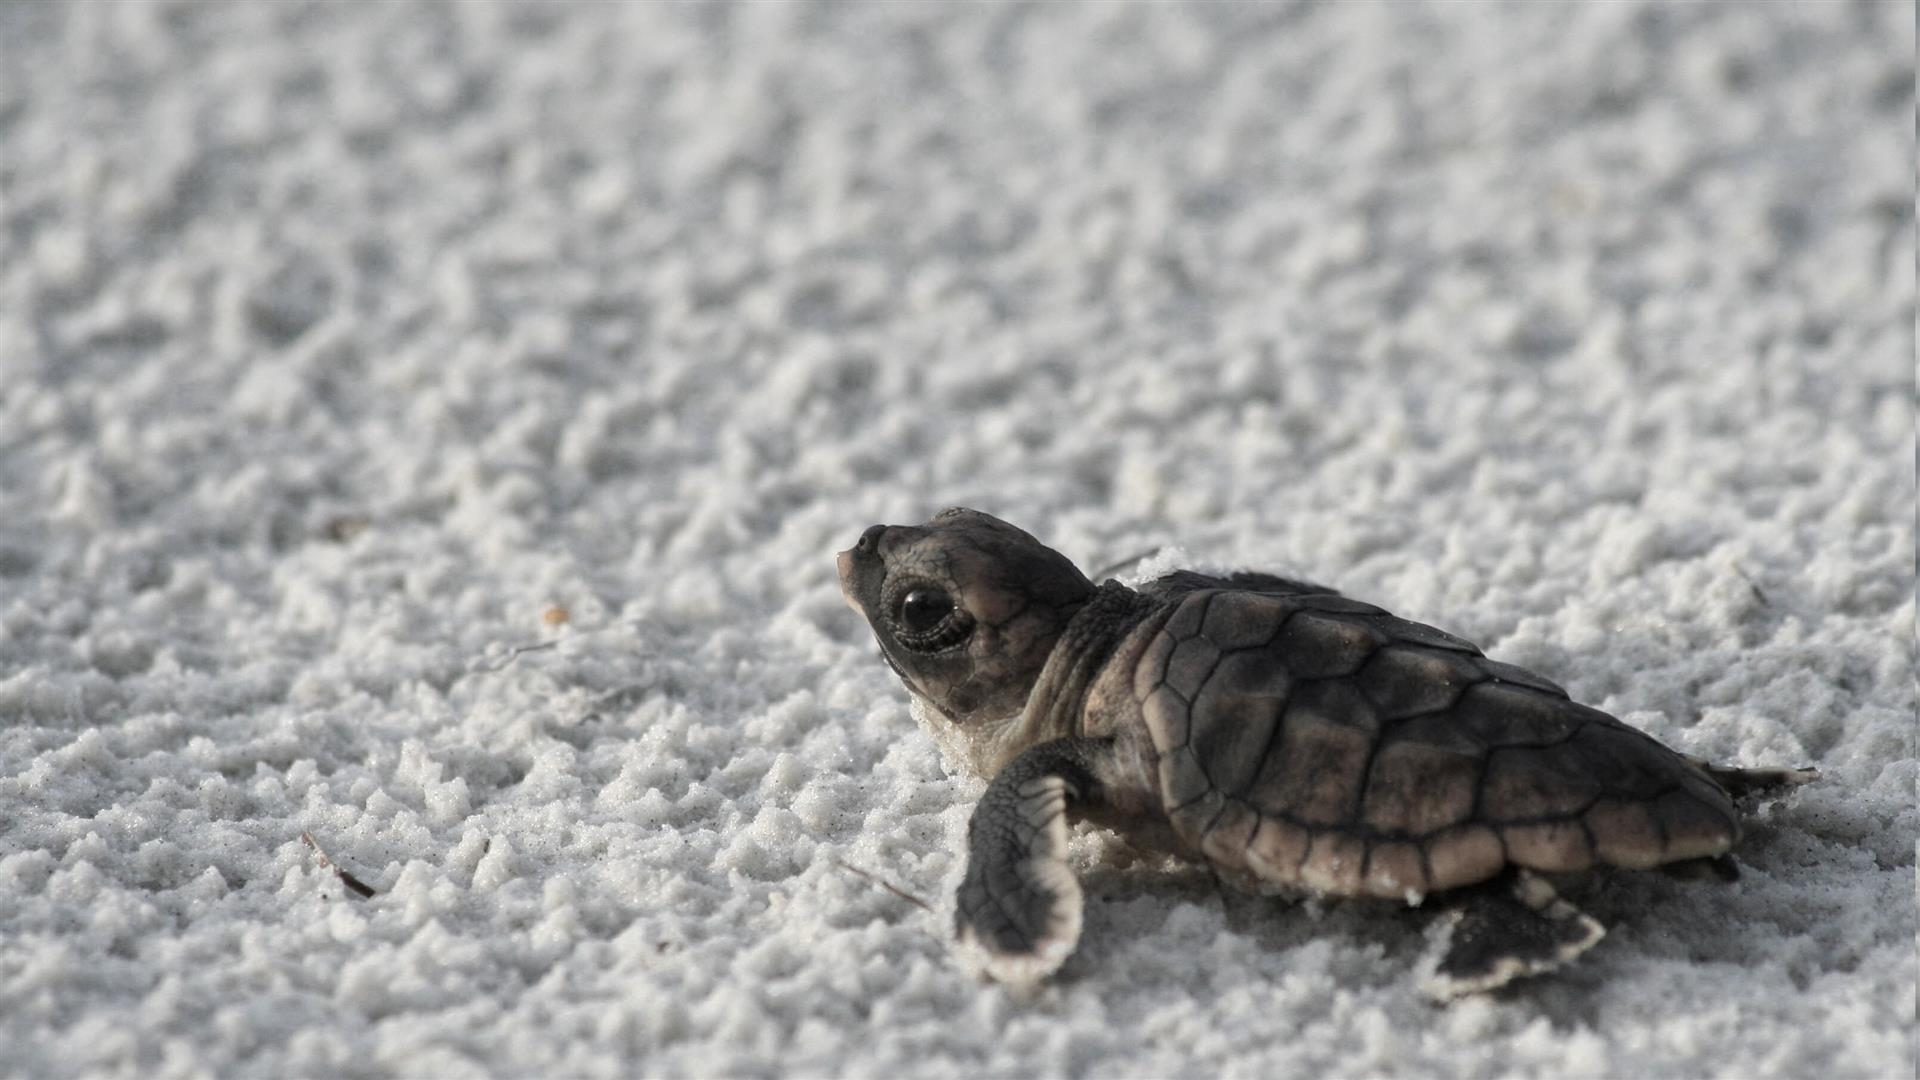 1920x1080 Baby Turtle on Beach